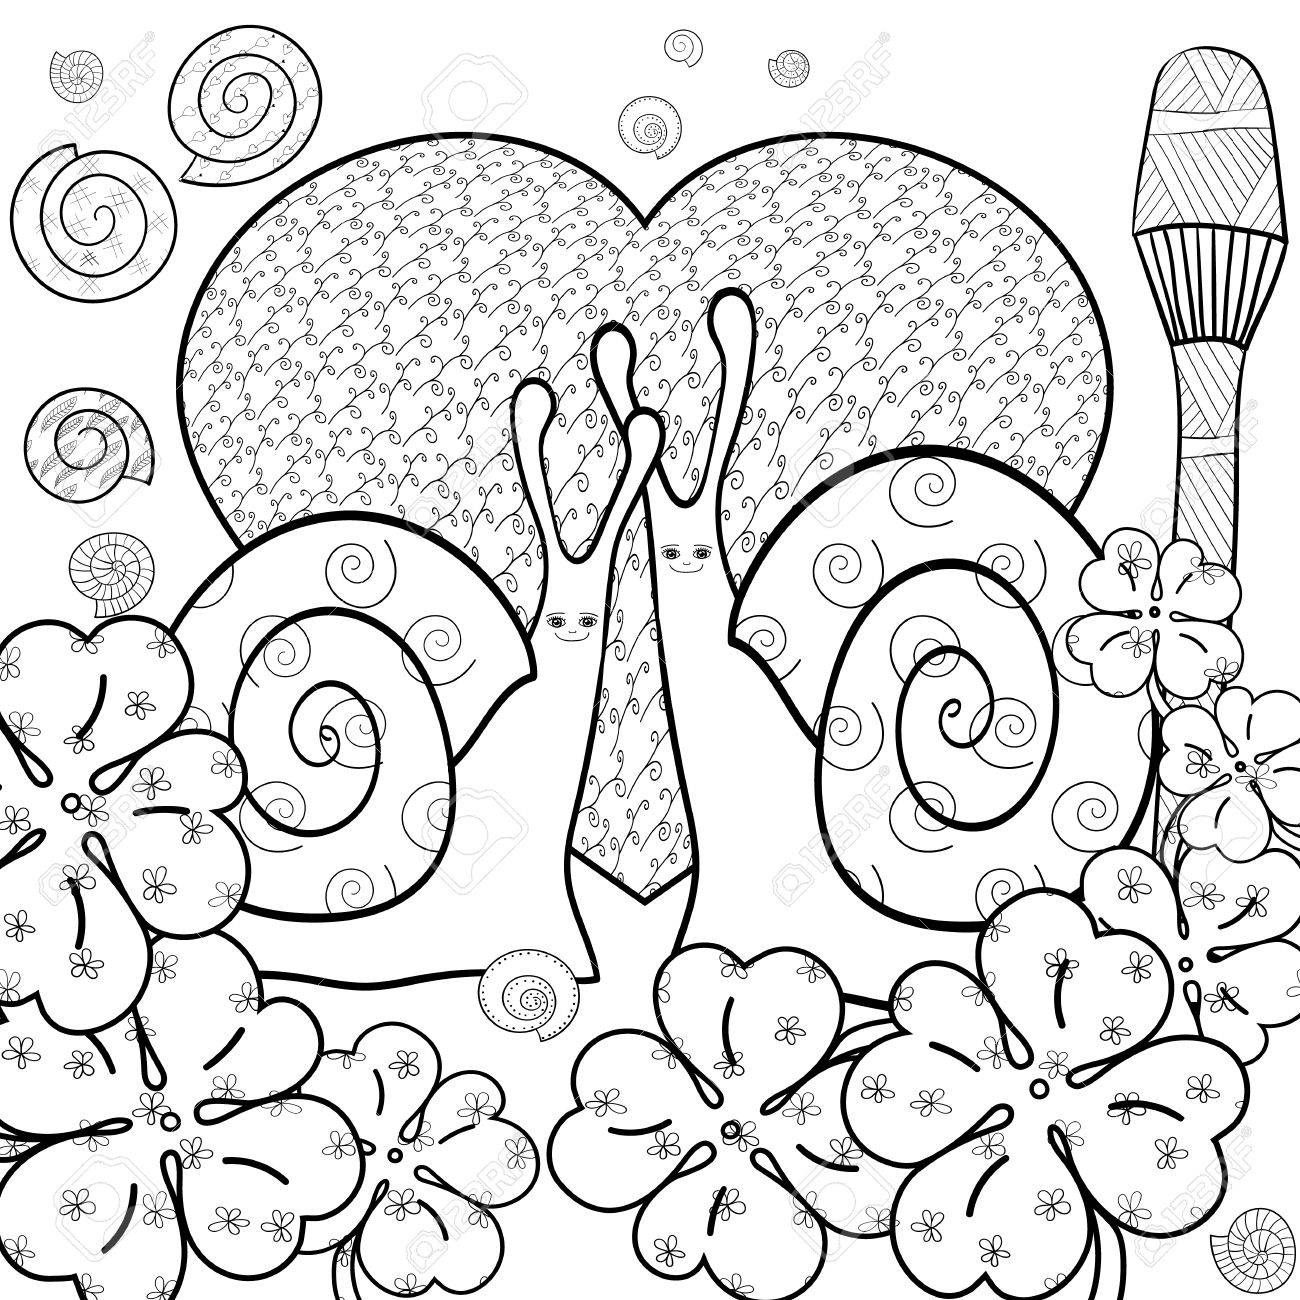 Whimsical designs coloring book - Cute Snail Adult Coloring Book Page Snails In Whimsical Garden Big Heart Love